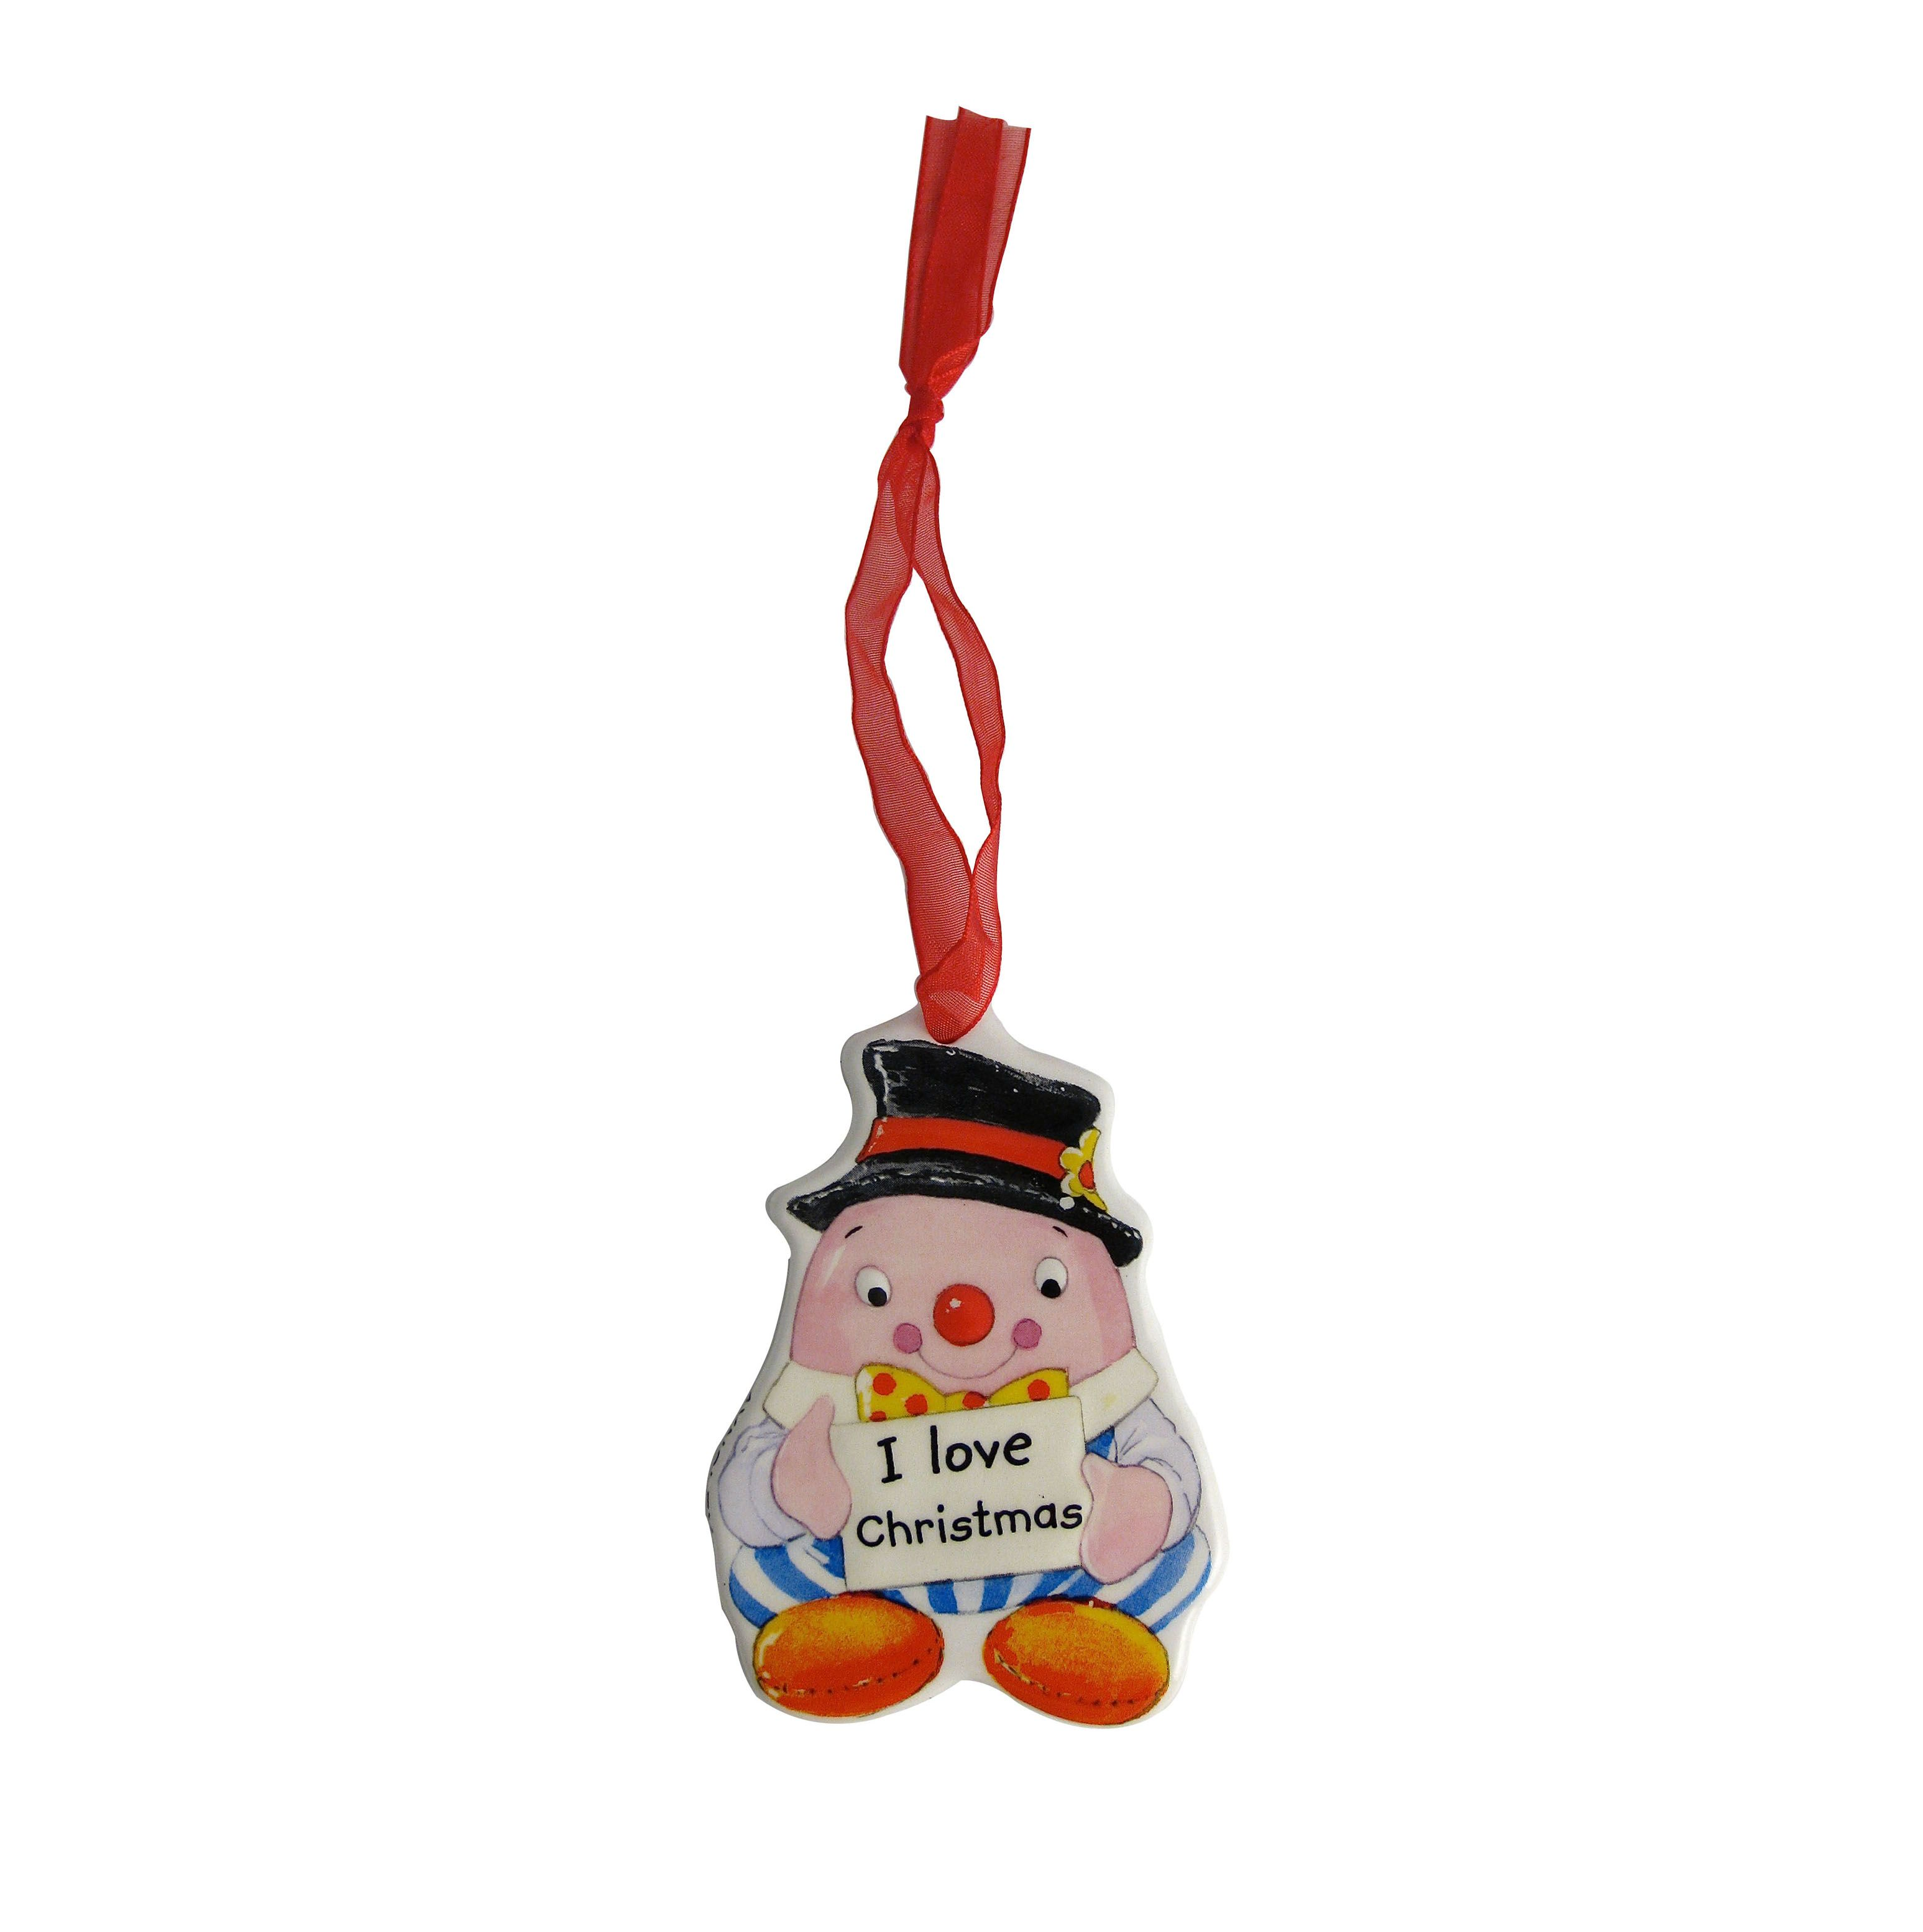 Aynsley Aynsley Humpty Dumpty hanging ornament